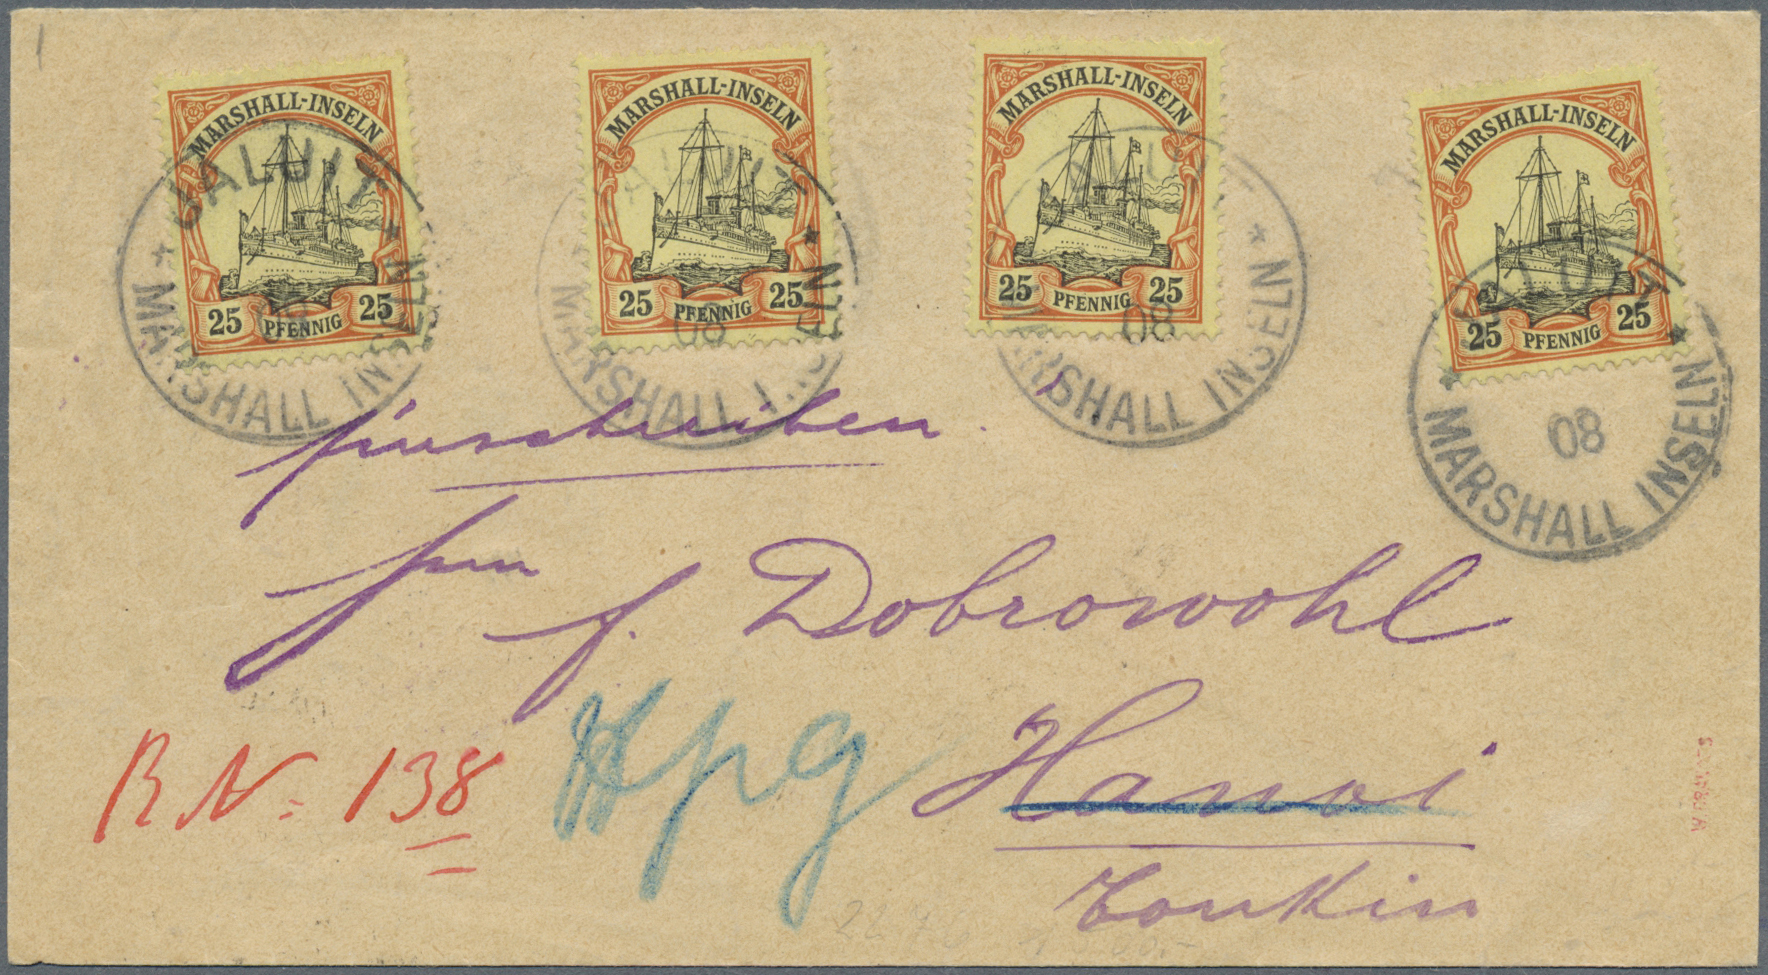 Lot 18779 - Deutsche Kolonien - Marshall-Inseln  -  Auktionshaus Christoph Gärtner GmbH & Co. KG Auction #40 Germany, Picture Post Cards, Collections Overseas, Thematics